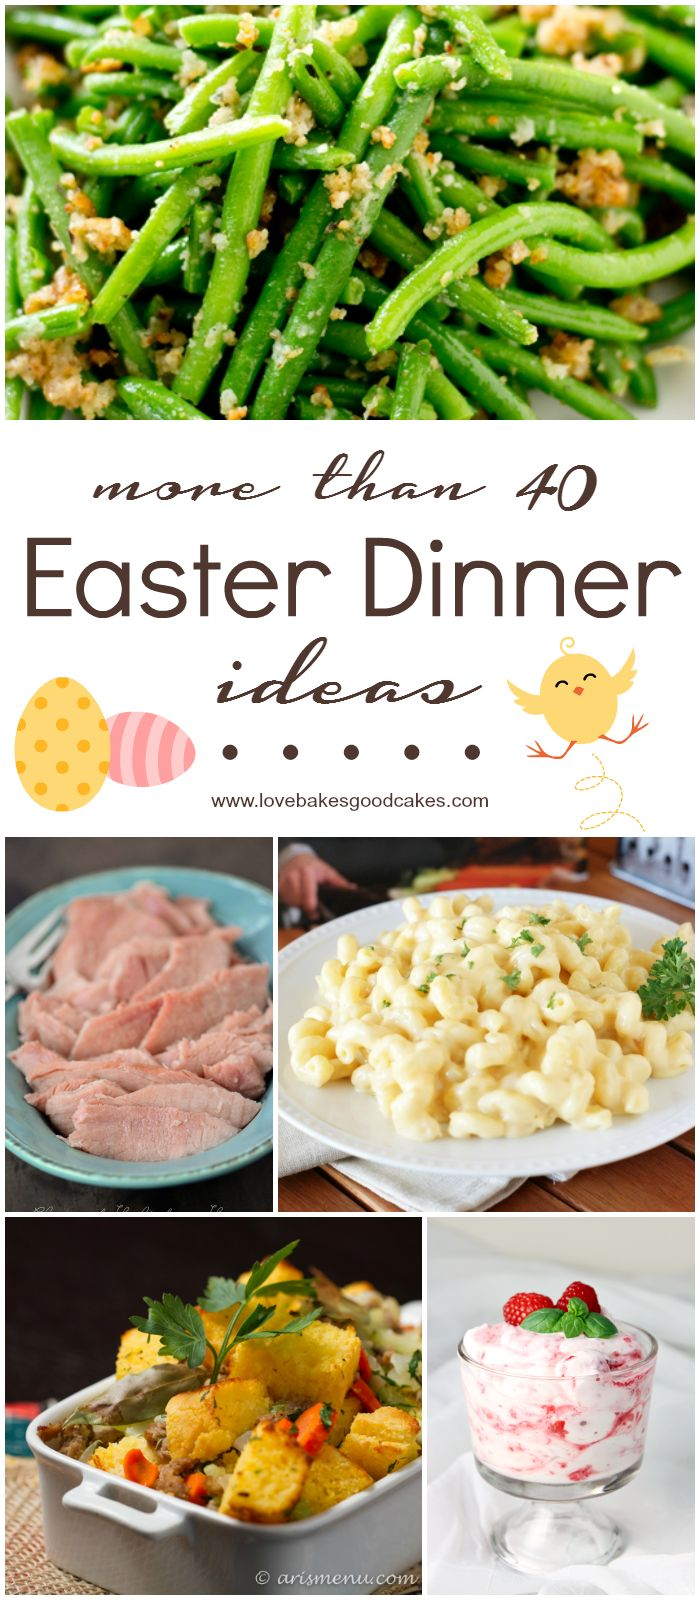 Best 25 easter ideas on pinterest easter crafts easter ideas more than 40 easter dinner ideas negle Image collections